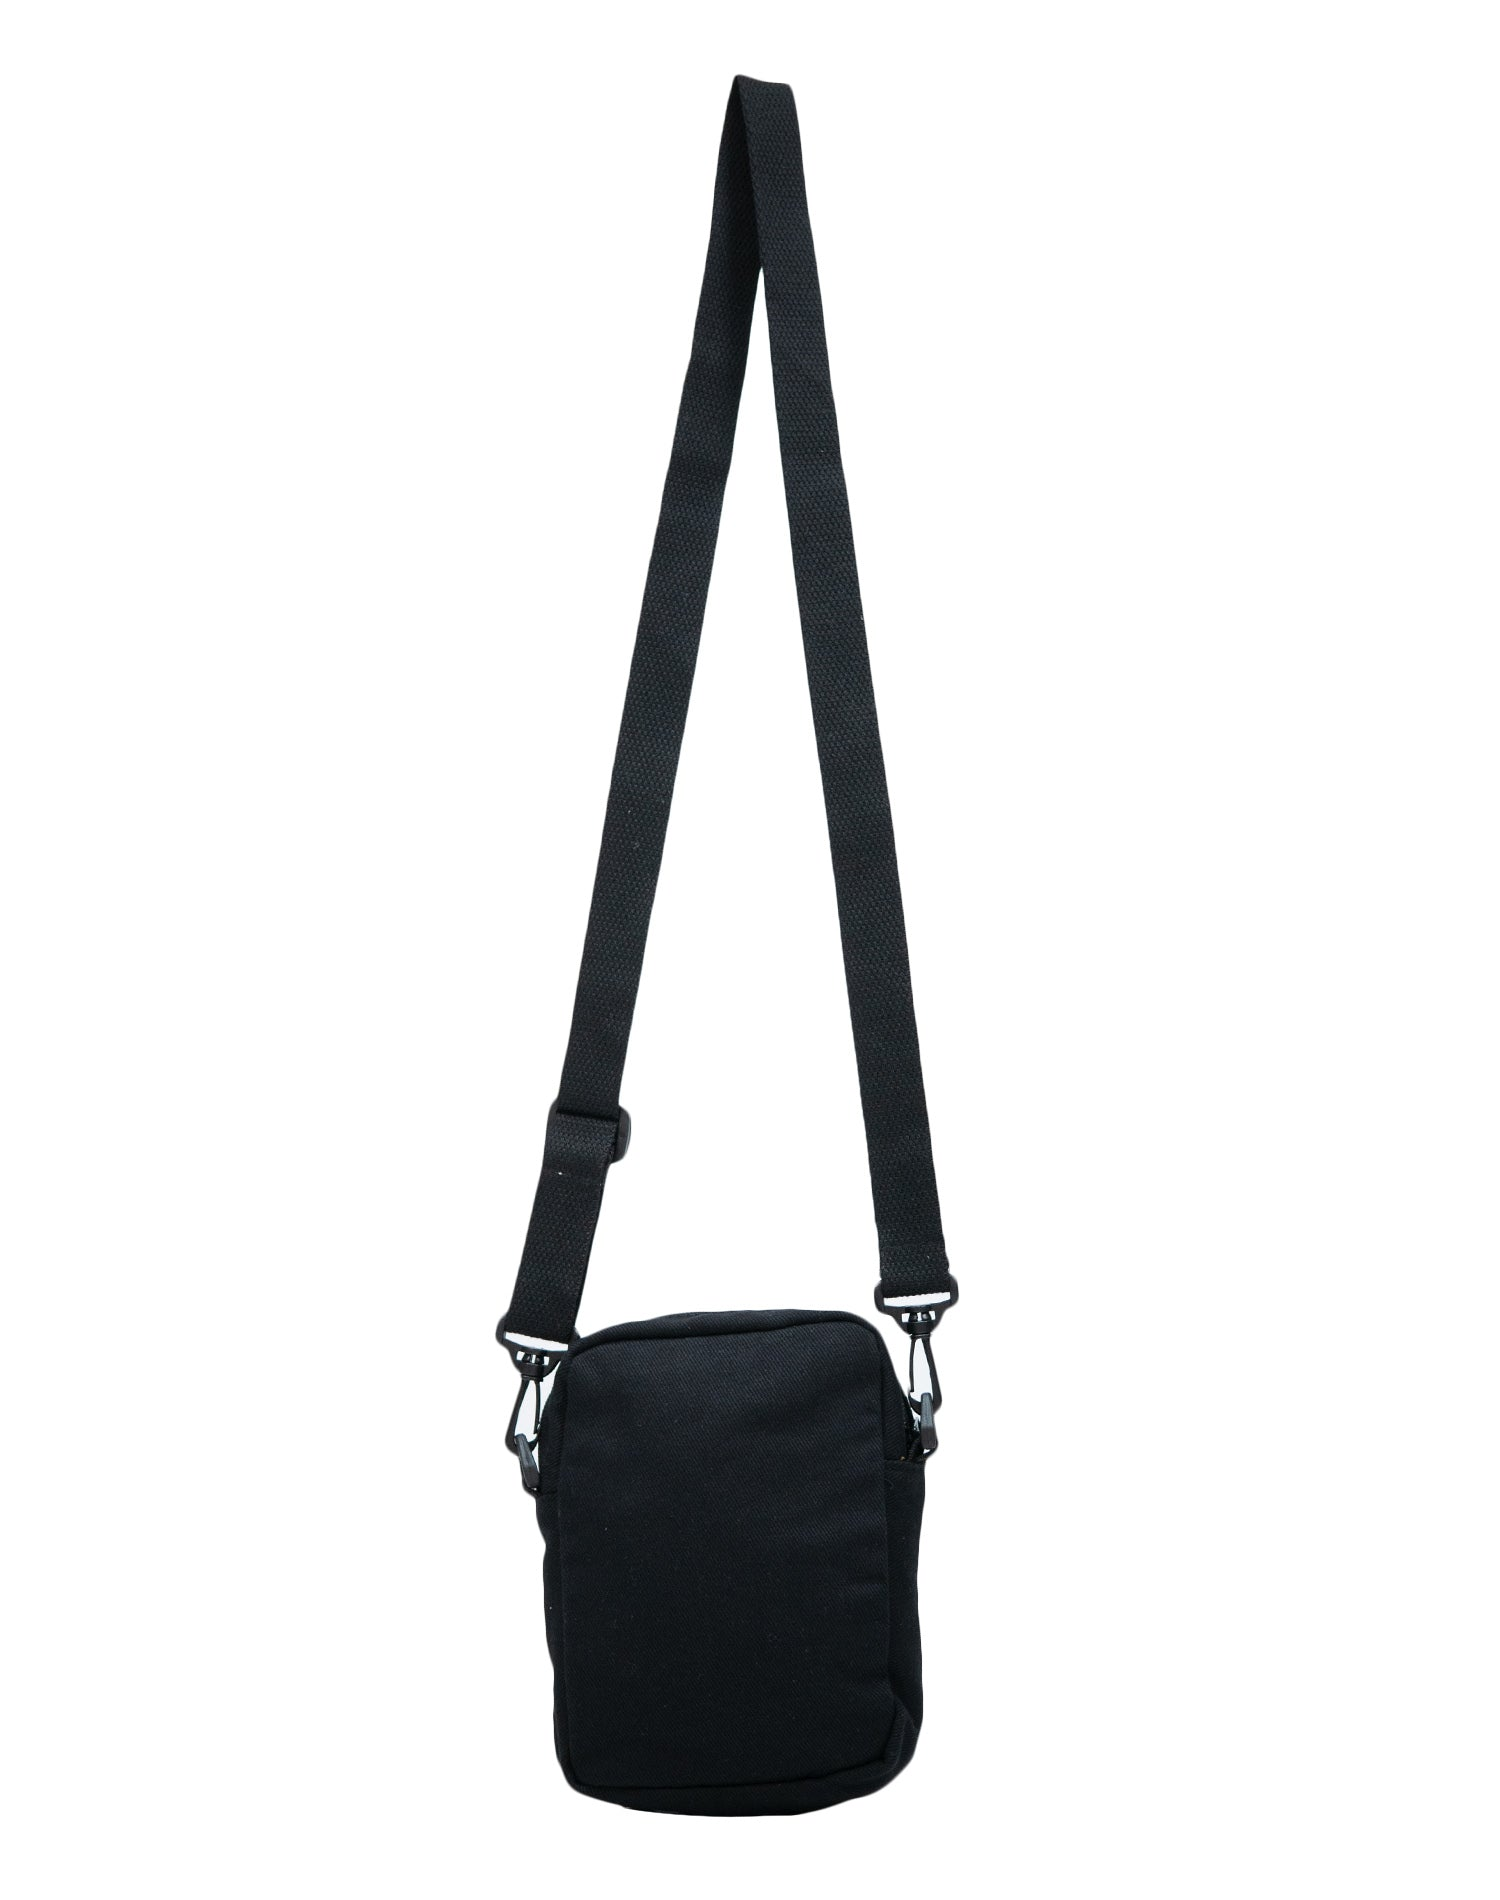 Black Sunny Canvas Mini Square Shoulder Bag.黑色帆布迷你方形單肩斜挎袋